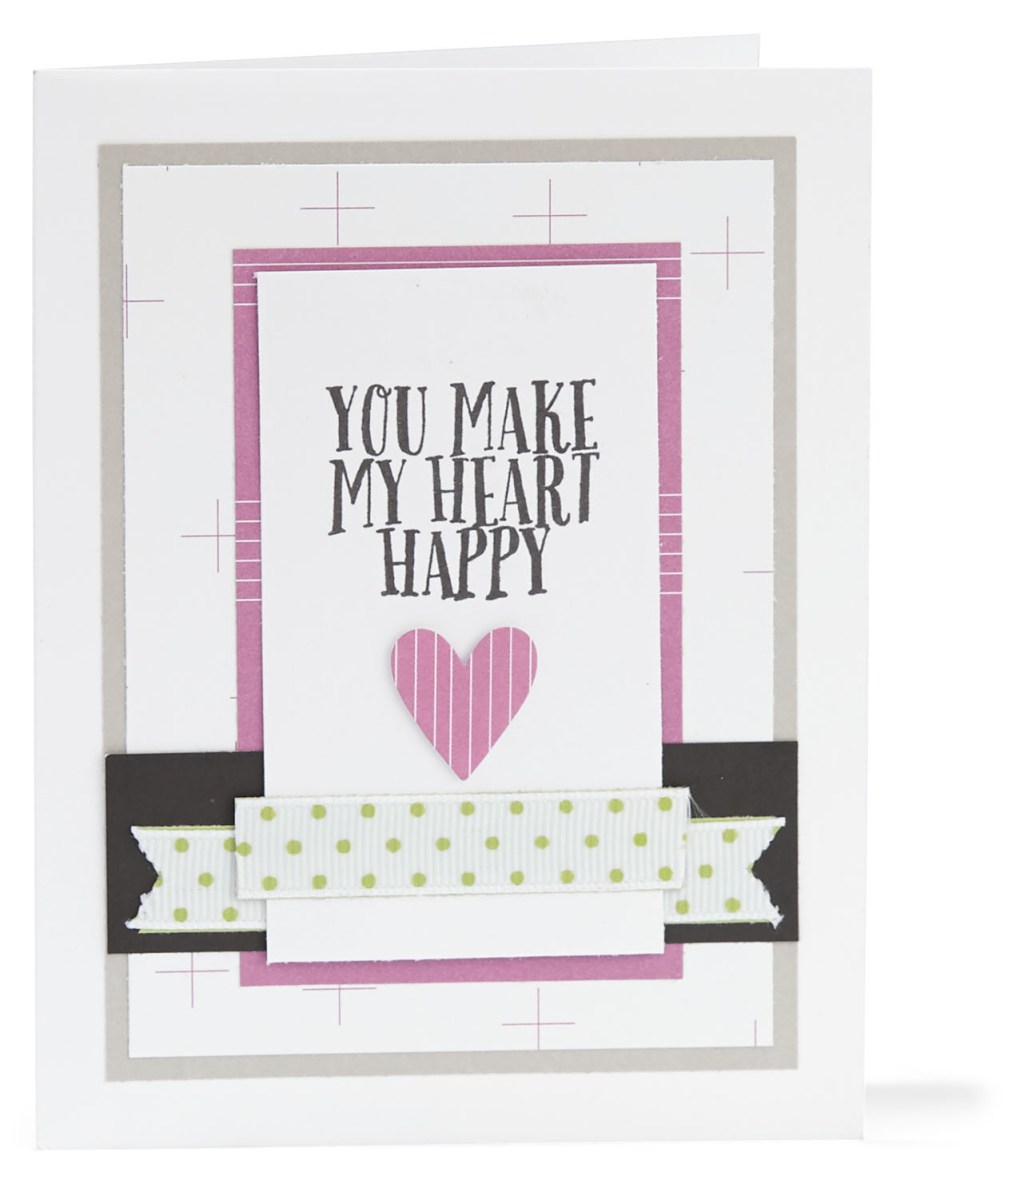 Free Card Patterns #ctmh #closetomyheart #make #heart #happy #happyheart #whimsy #fundamental #fundamentals #paper #packet #free #card #pattern #patterns #diy #cardmaking #scrapping #scrapbooking